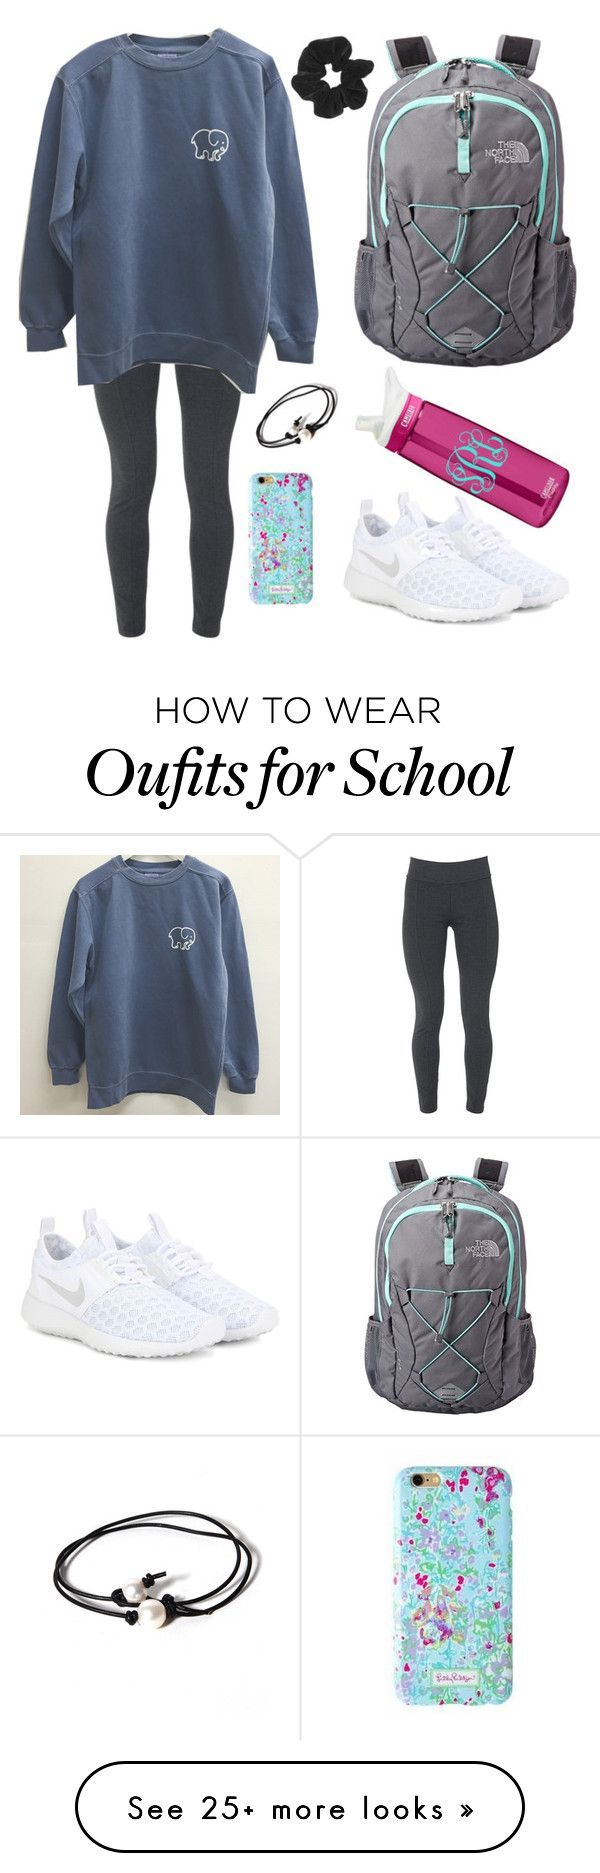 """school day"" by jazmintorres1 on Polyvore featuring Fabrizio Gianni, NIKE, The North Face, Lilly Pulitzer, CamelBak, Joie, Topshop, women's clothing, women and female"